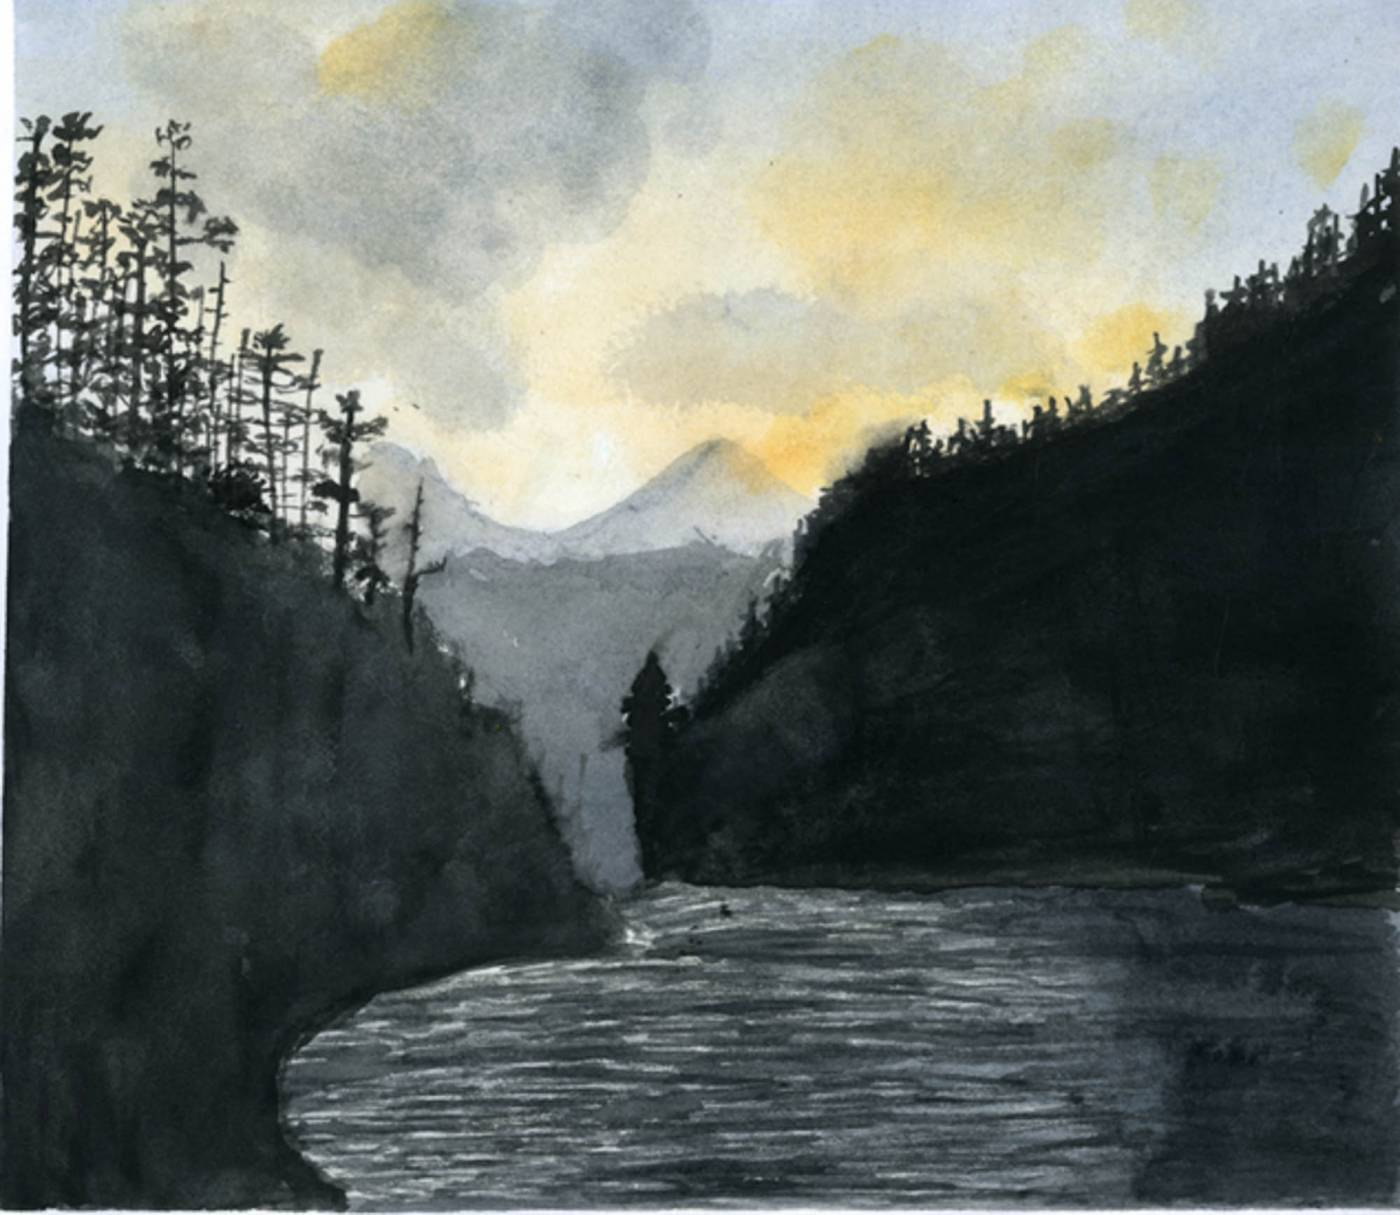 Alaskan Cove, Emma Ratshin, age 13 Seattle, Washington Lakeside Middle School Teacher: Alicia Hokanson, 2013 River of Words Finalist